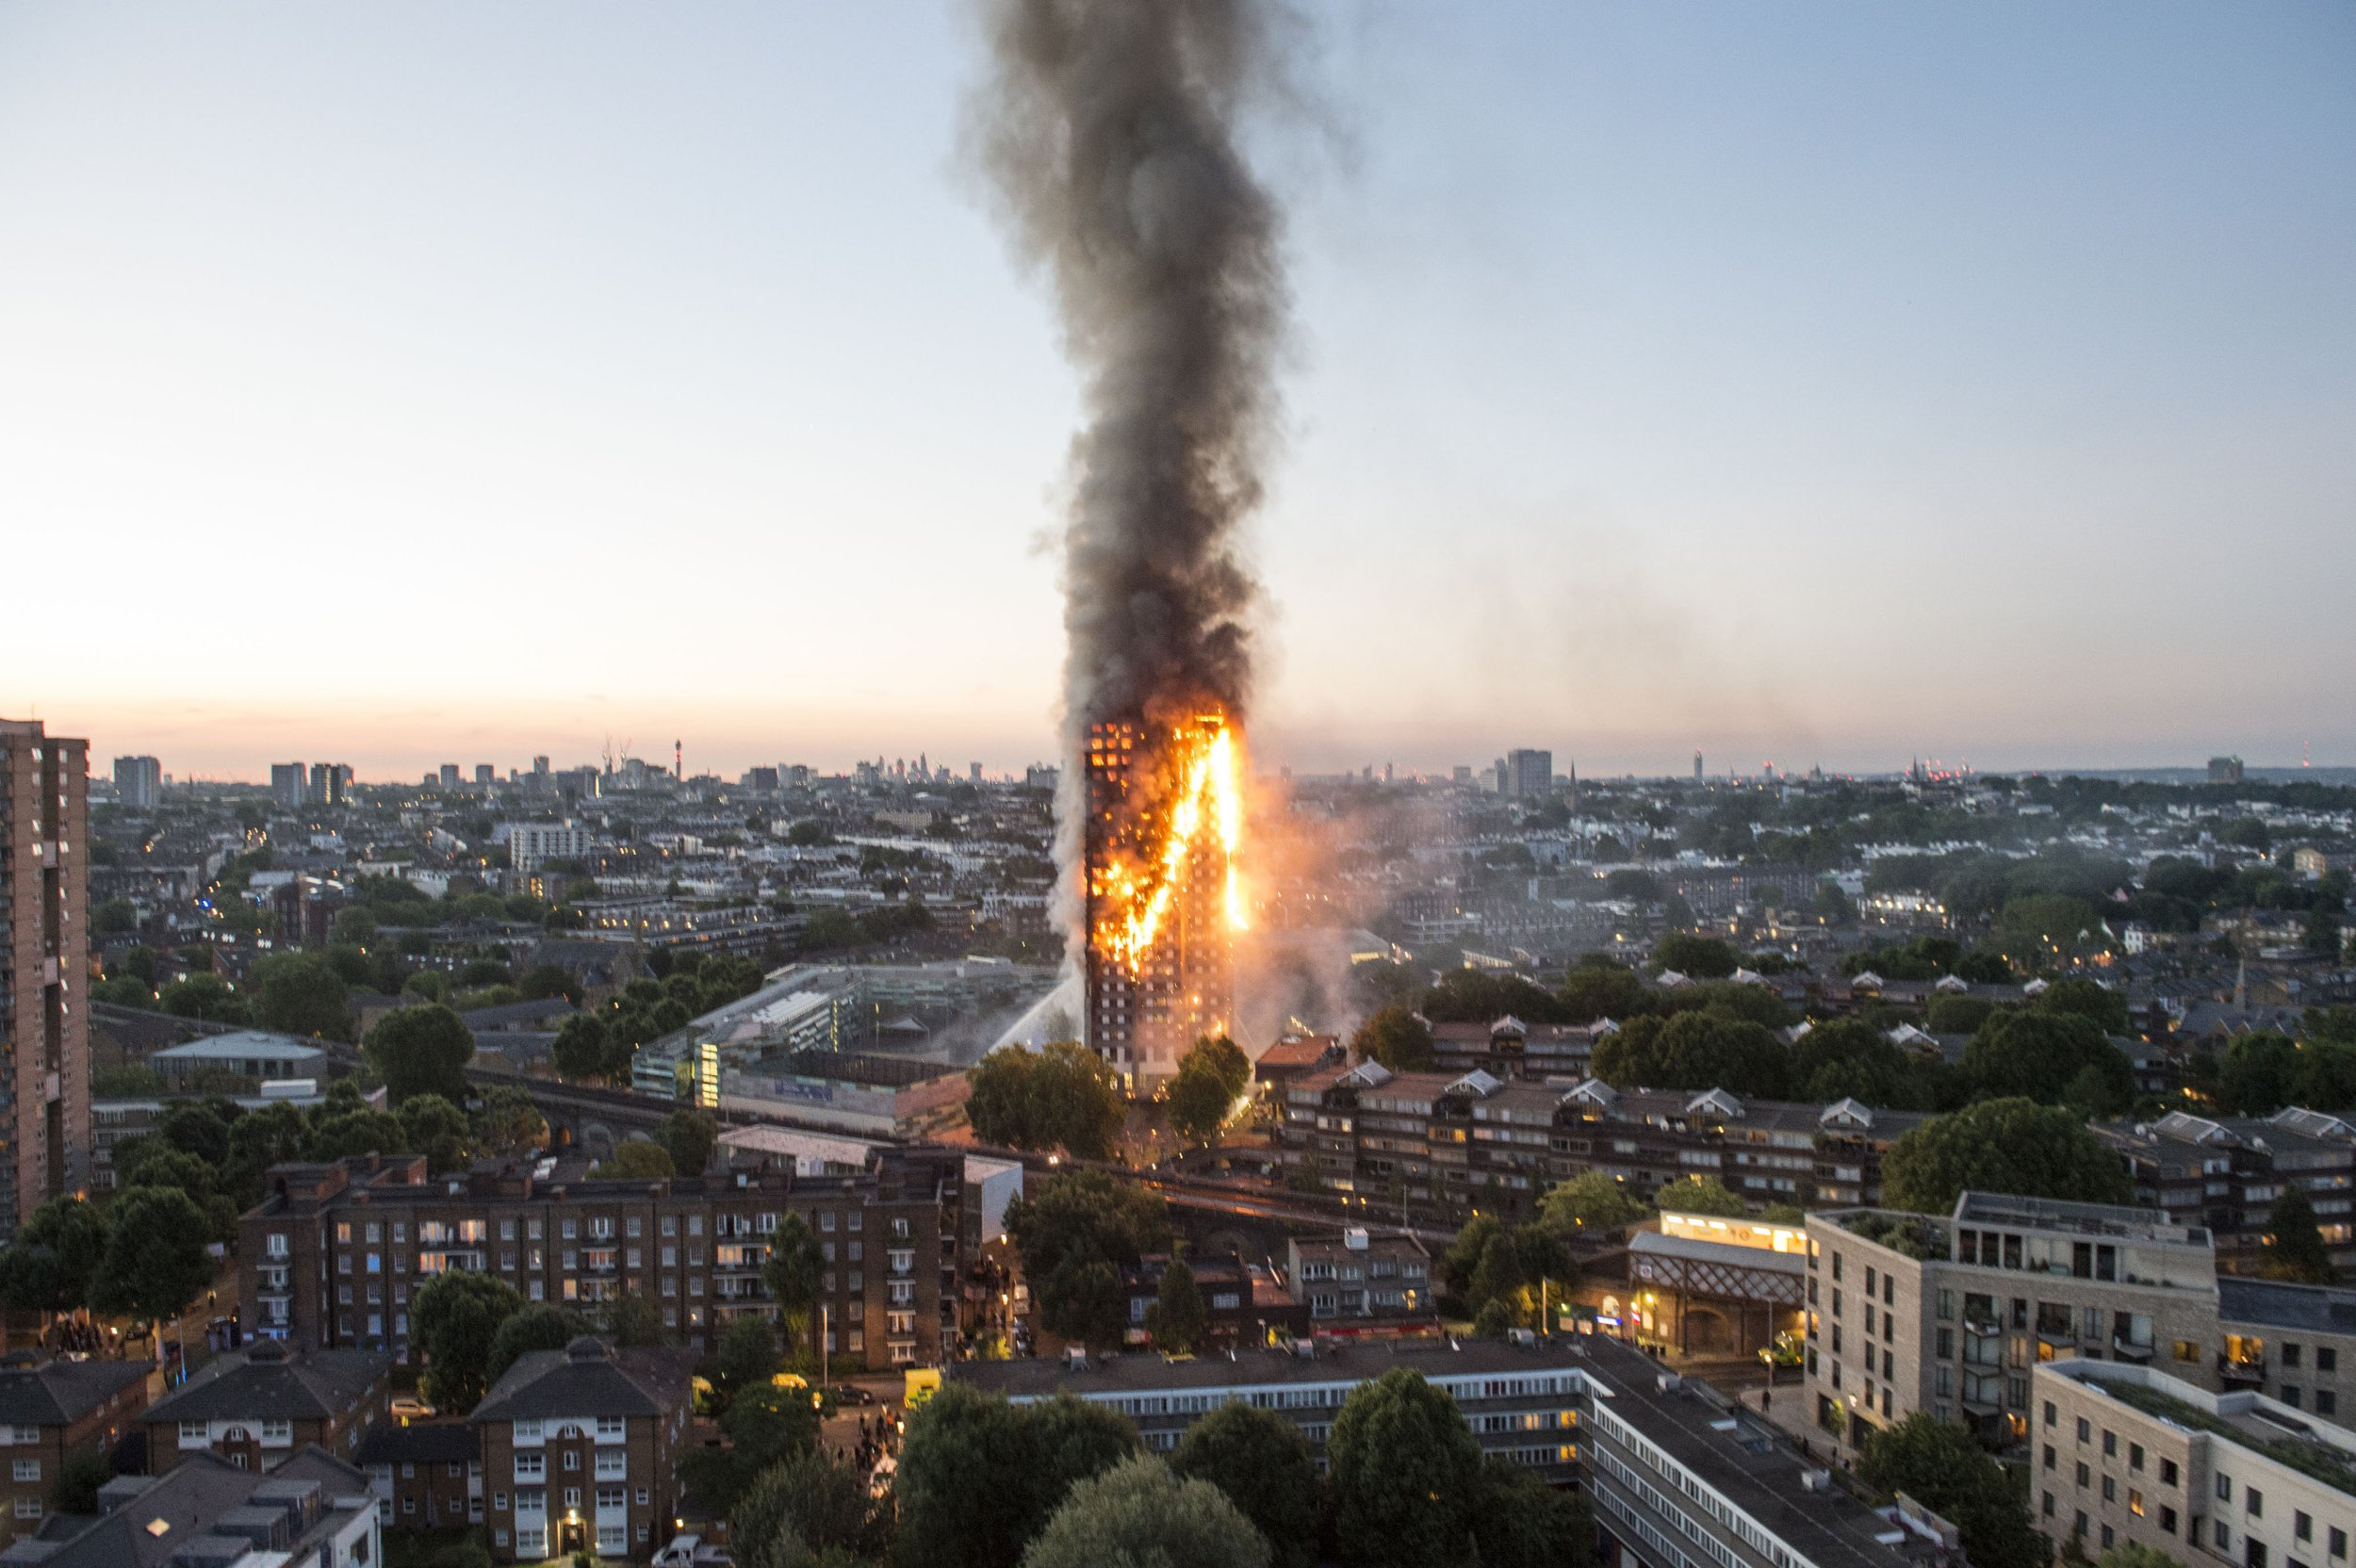 Tragic footage from inside burning Grenfell Tower shows